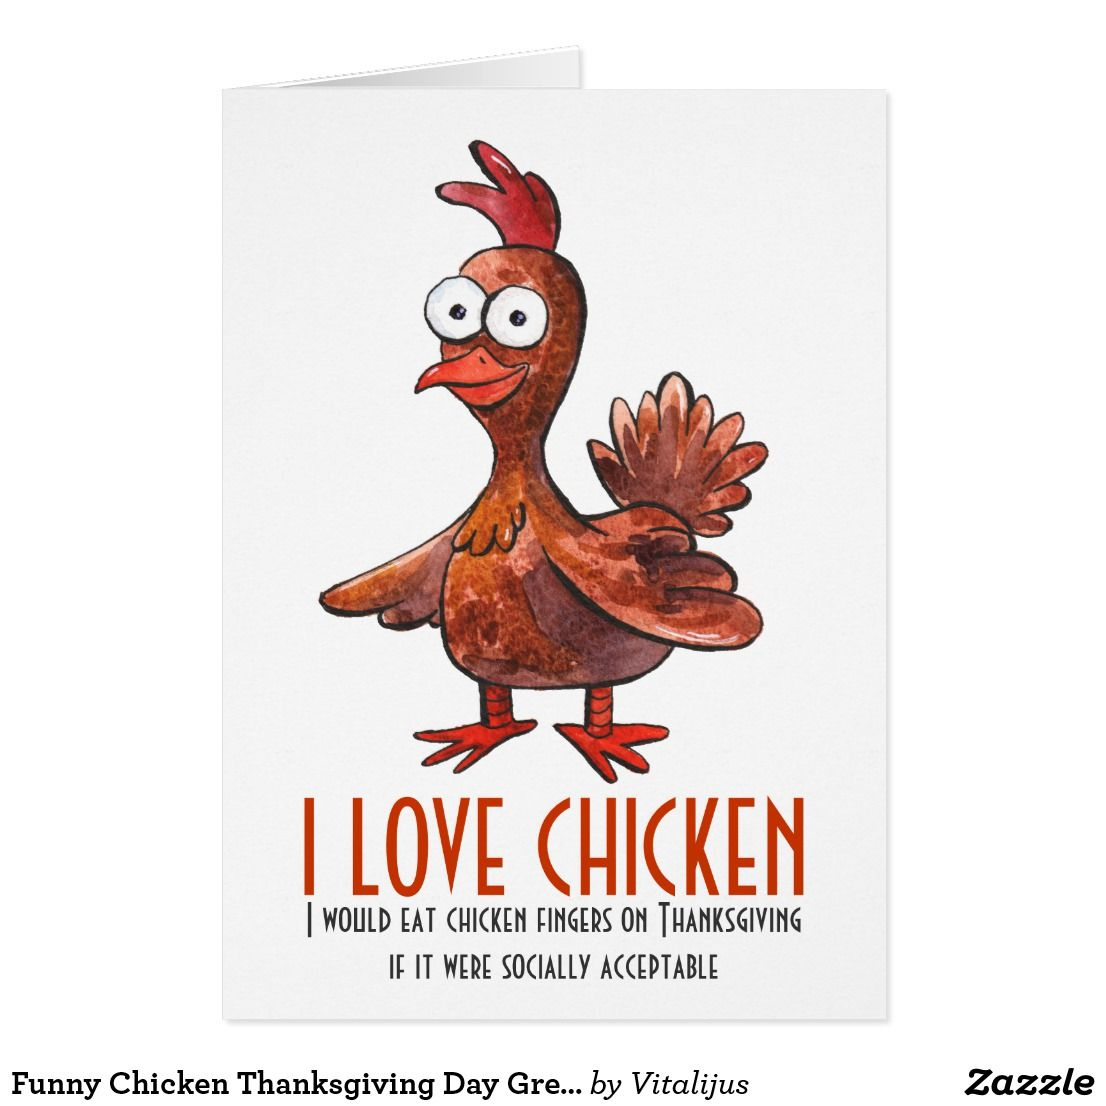 Funny chicken thanksgiving day greeting card custom thanksgiving funny chicken thanksgiving day greeting card kristyandbryce Gallery